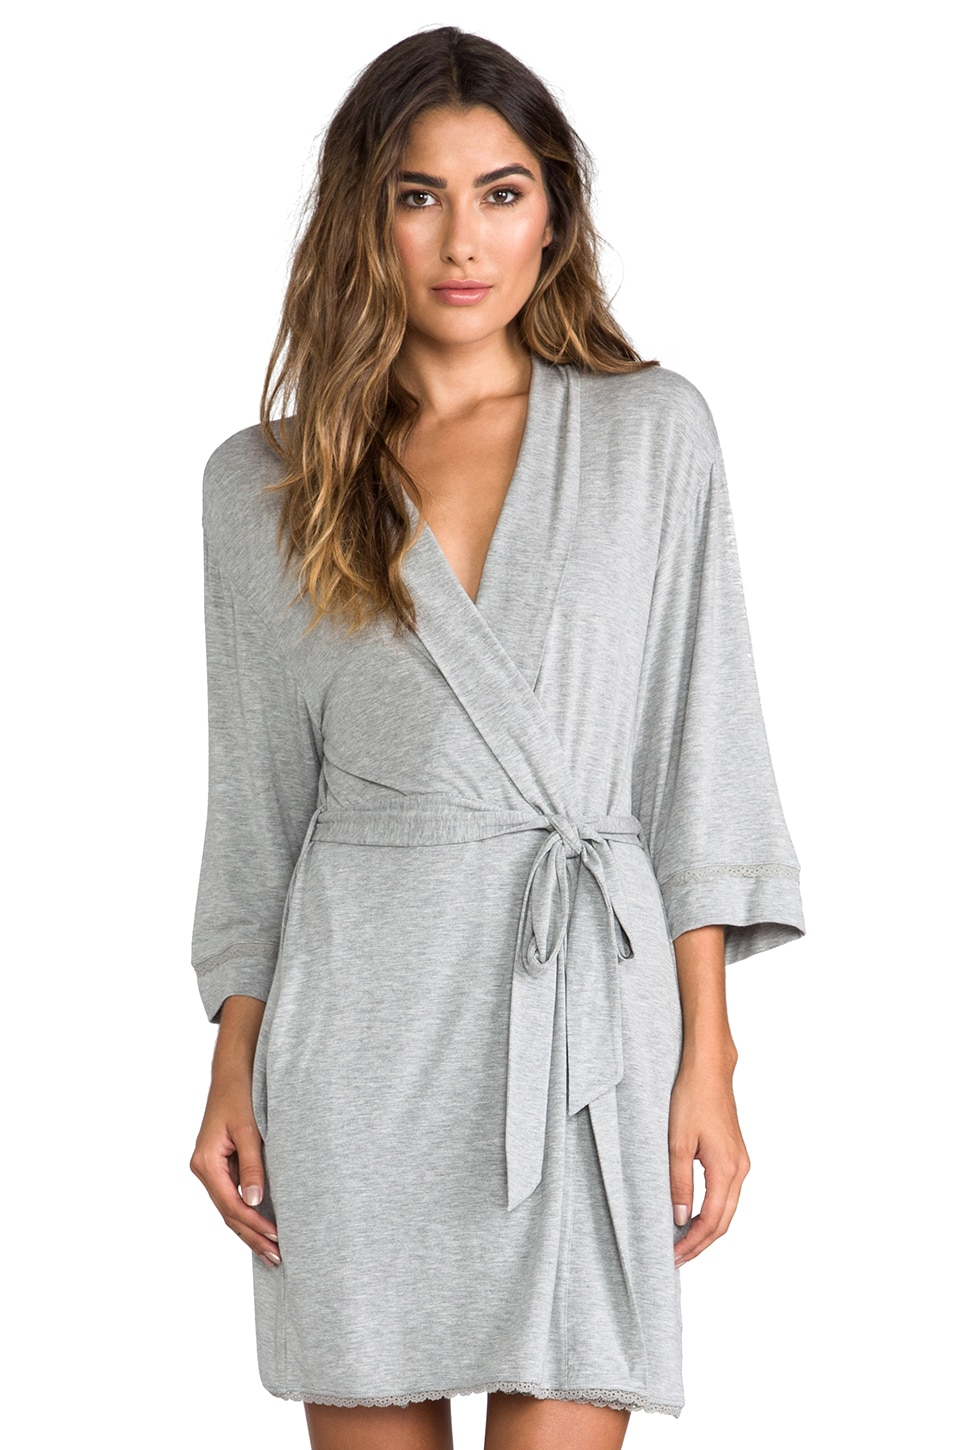 Juicy Couture Robe in Heather Cozy